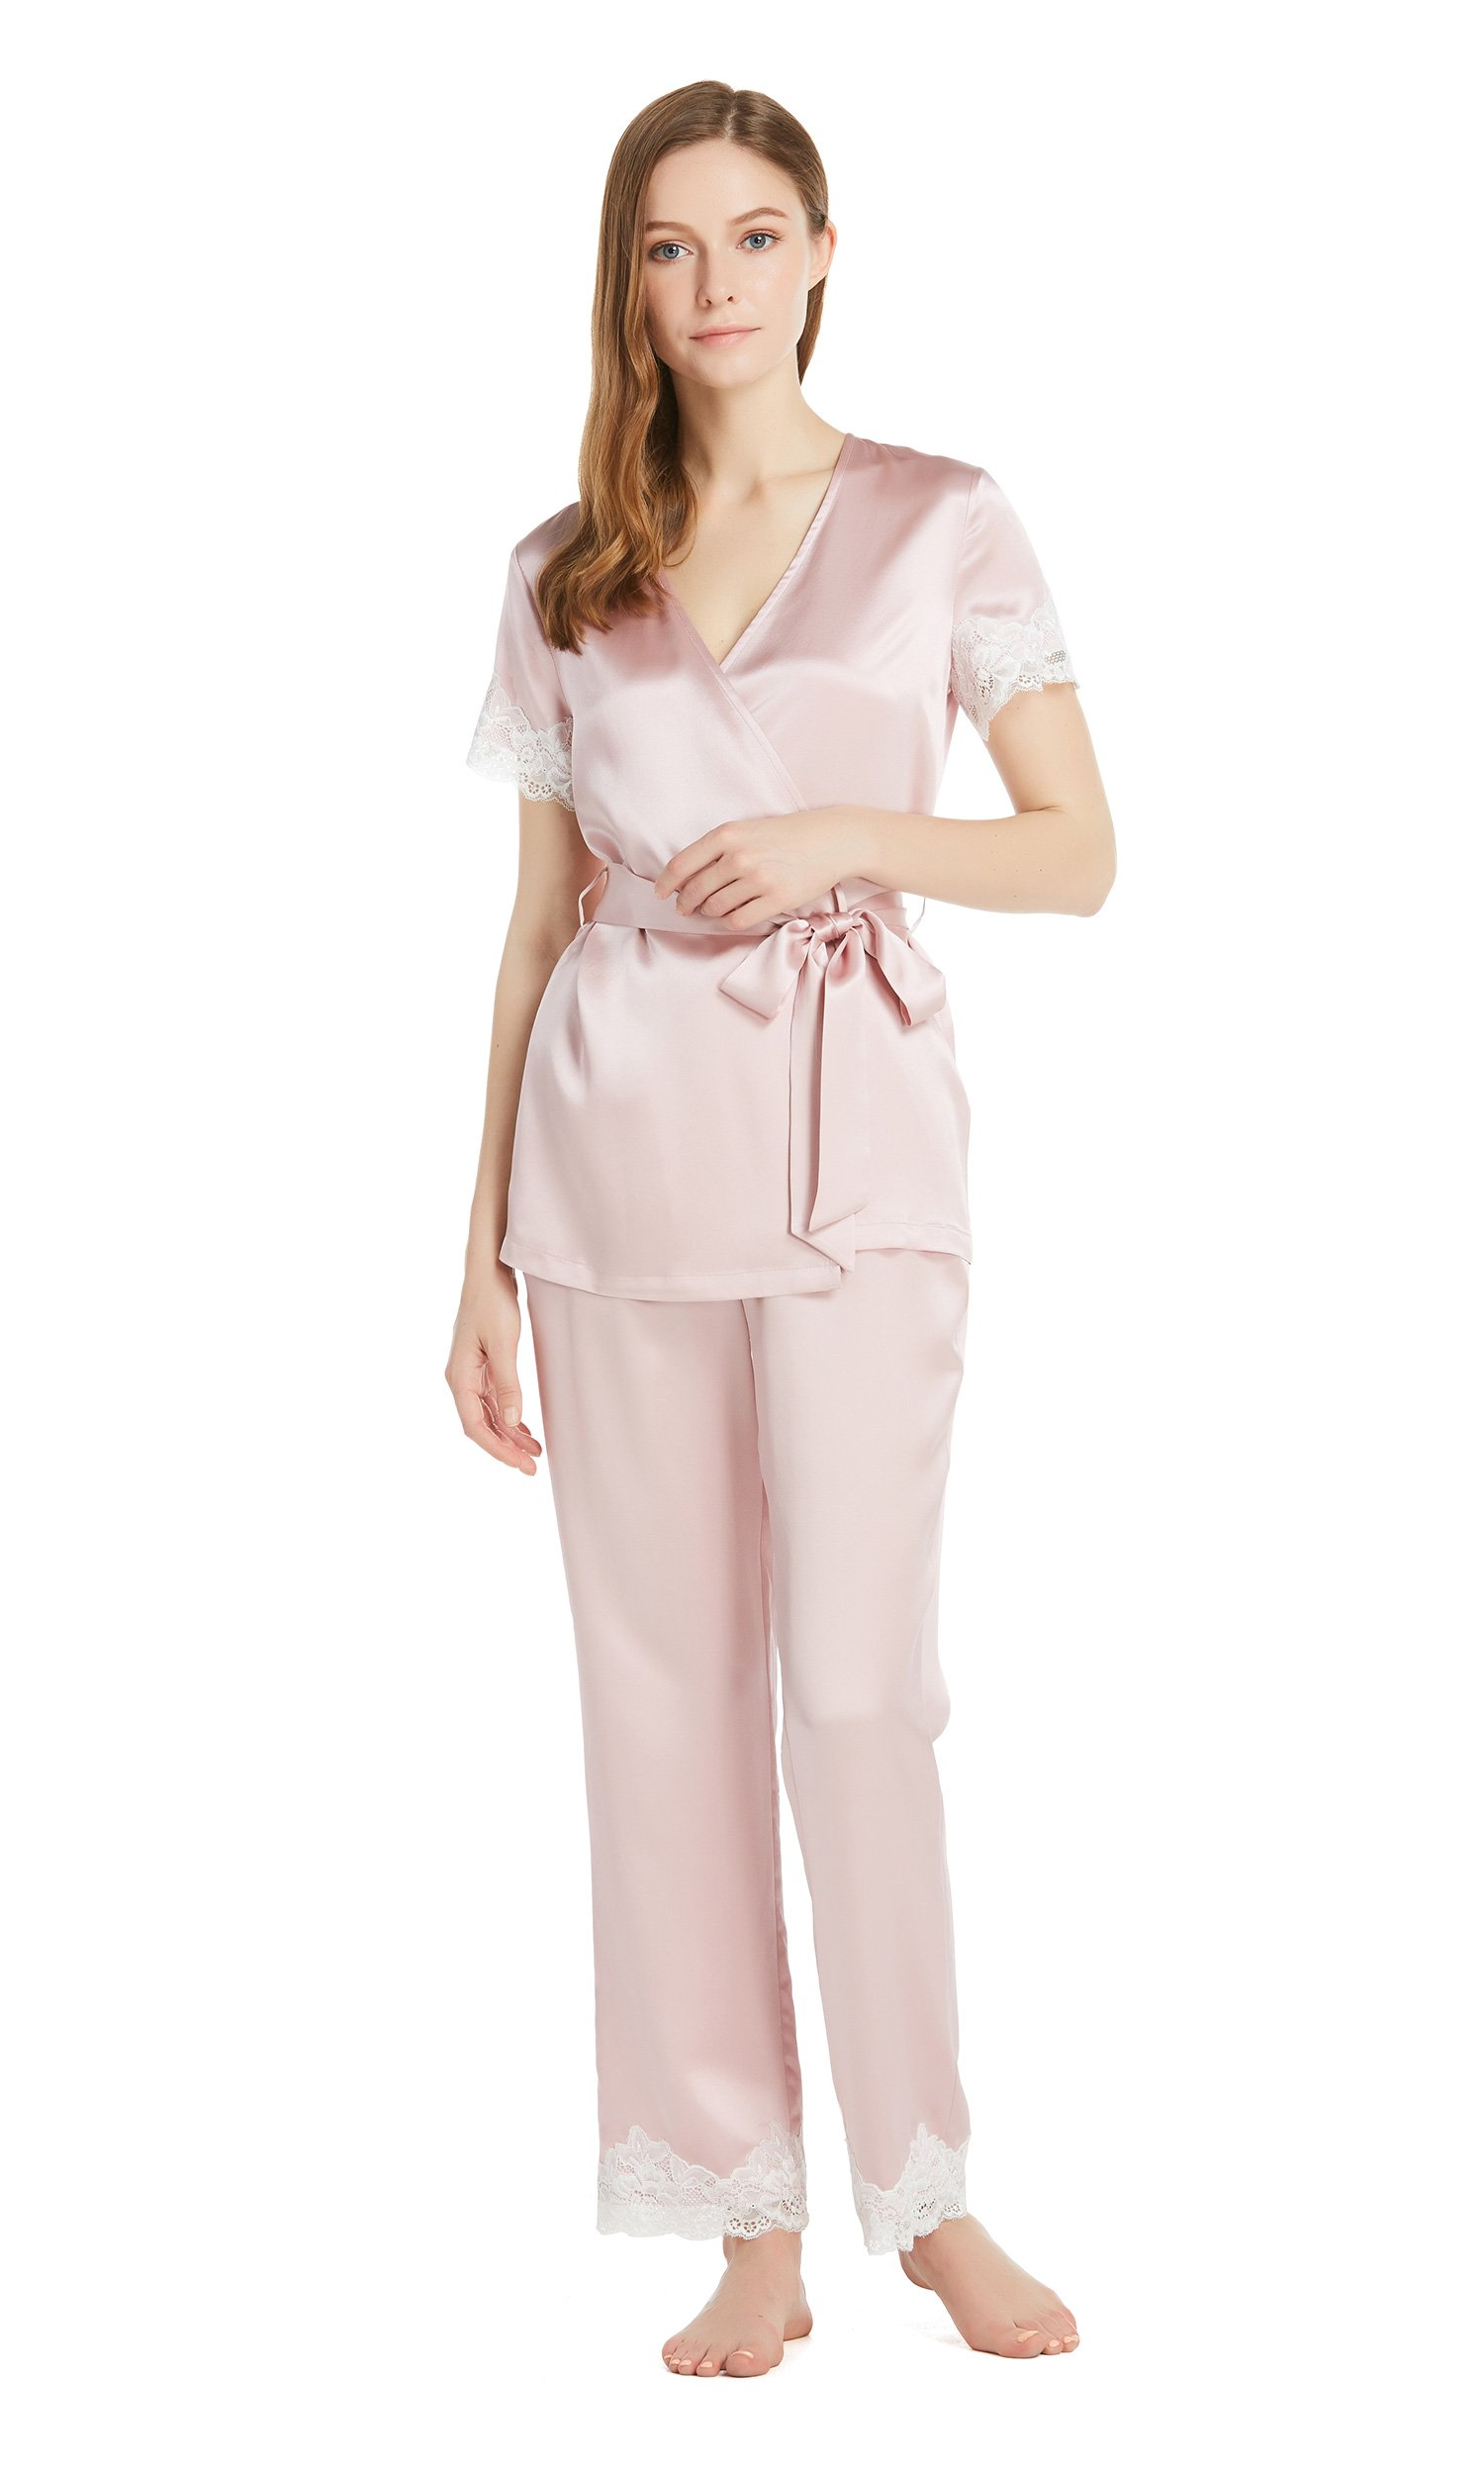 LilySilk Silk Pajamas for Women Short Sleeve Lace Robe Style Top Long Pant 22 momme Pure Mulberry Elegant Sleepwear Rosy Pink XS/0-2 by LilySilk